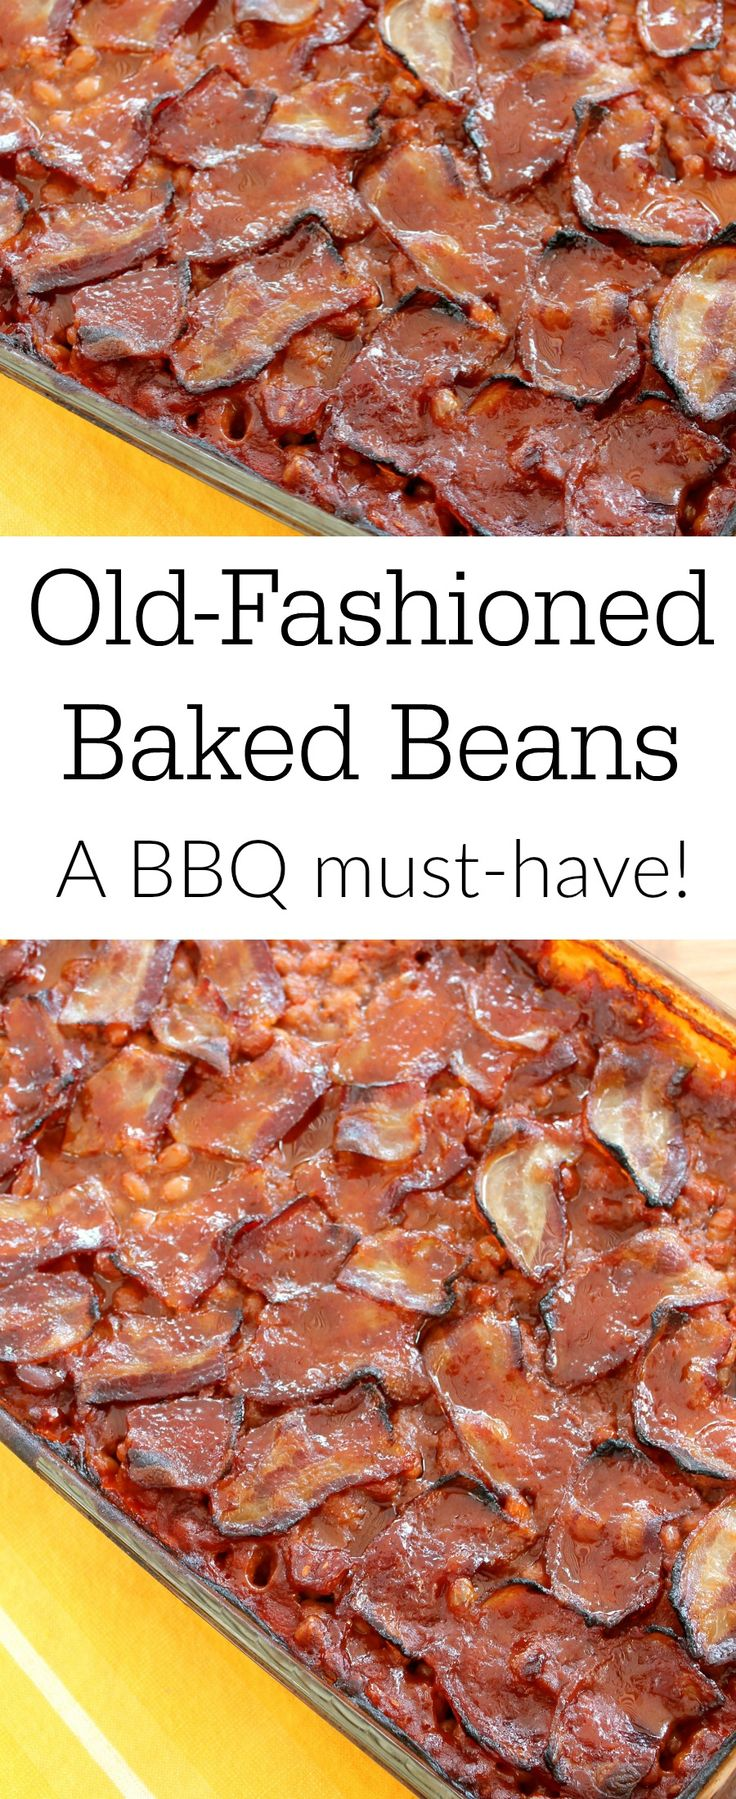 I get asked for this recipe for Old Fashioned Homemade Baked Beans with bacon every time I take it somewhere! I always come home with an empty pan!